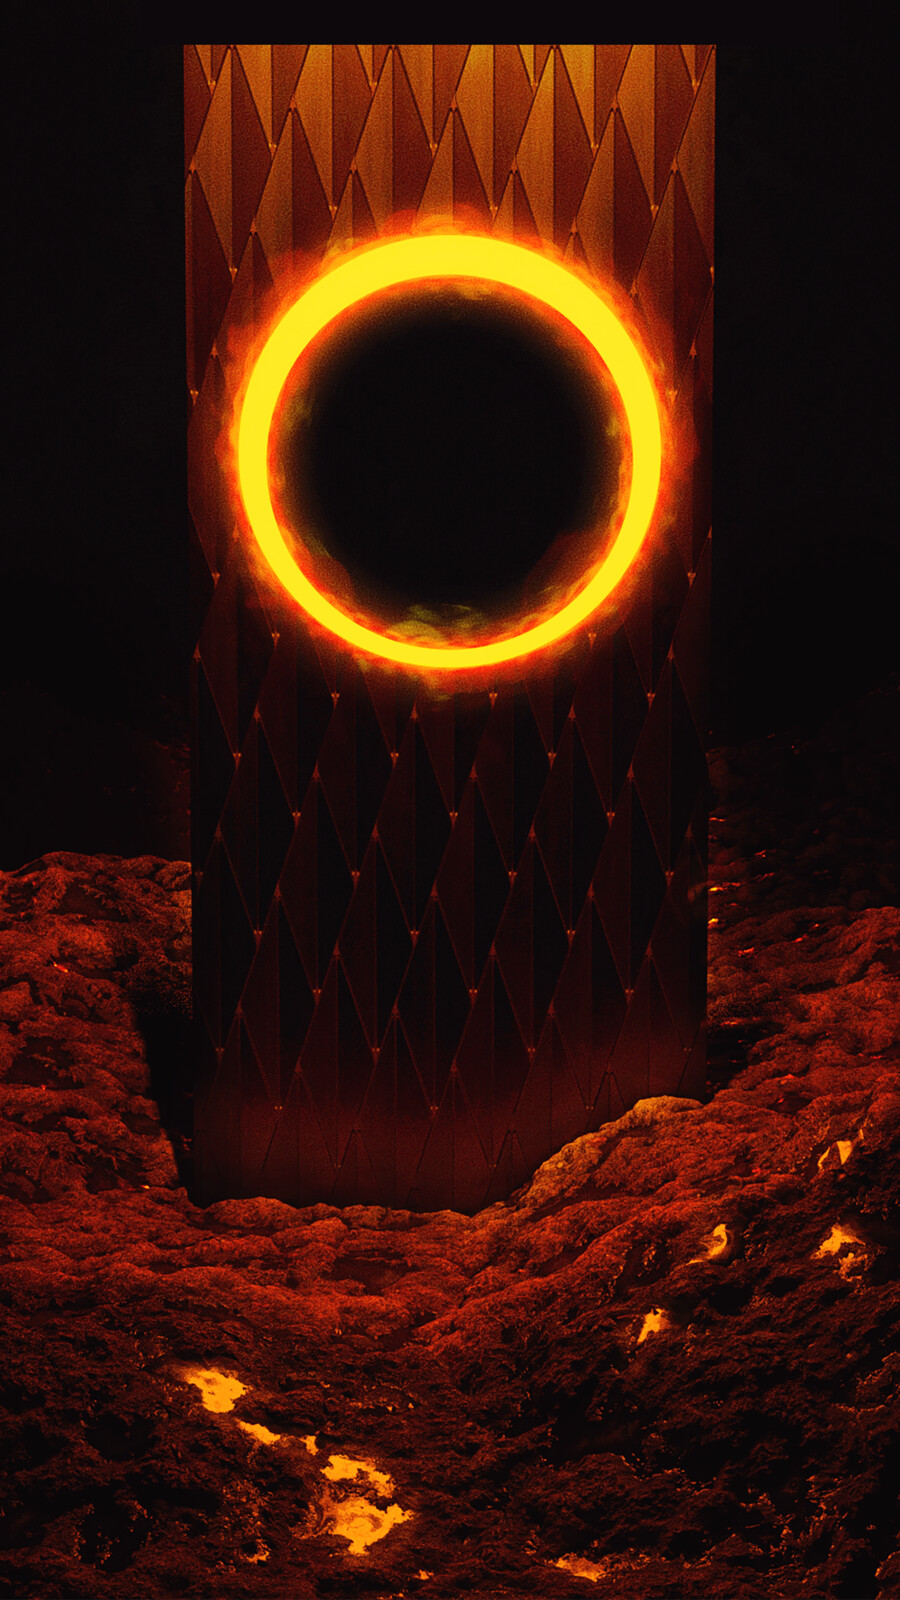 Title: Migration  Description: An obelisk with a glowing hole in it's top stands amongst a rocky landscape